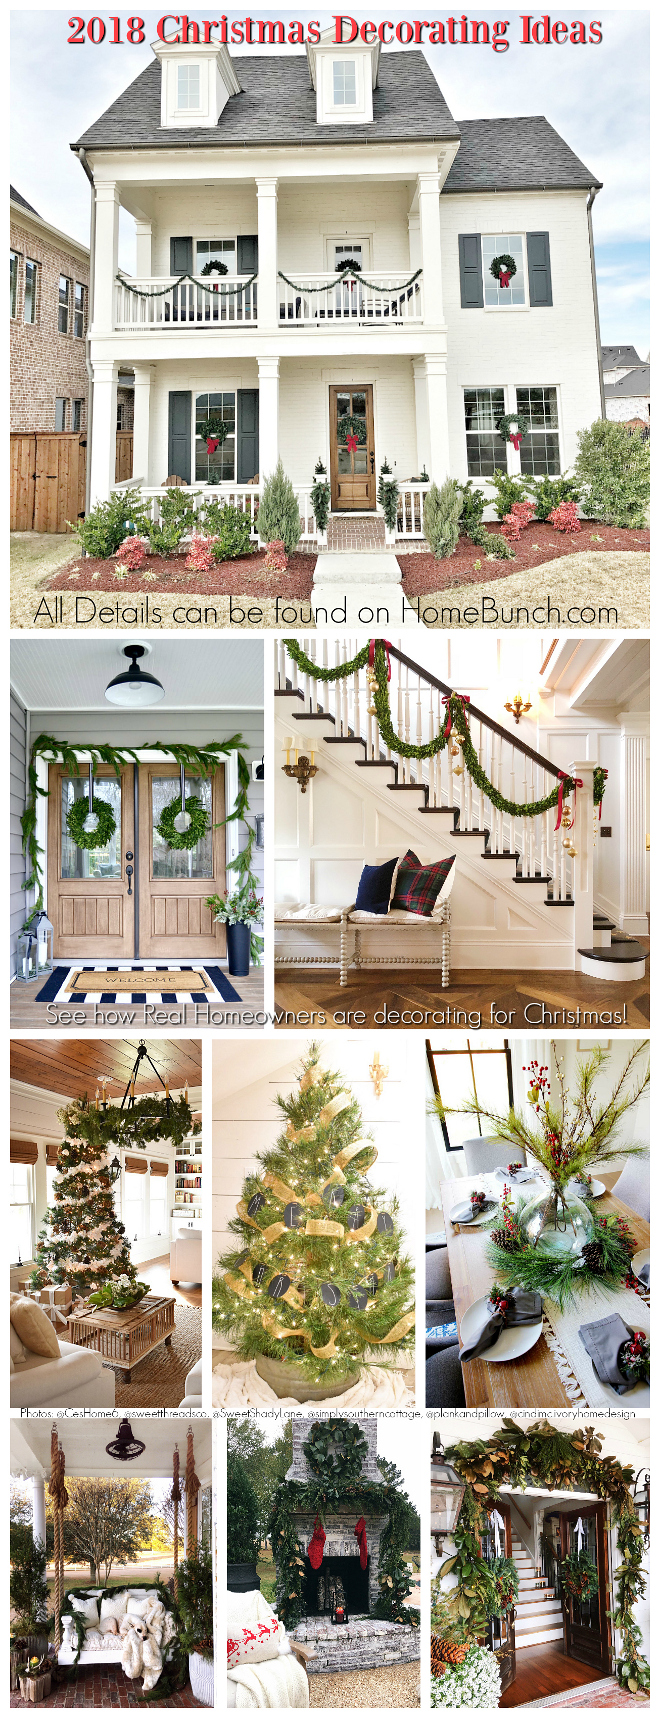 2018 Christmas Decorating Ideas Instagram Christmas Ideas 2018 Christmas Decorating Ideas Instagram Christmas Ideas #farmhouse #ChristmasTradition #SeasonsGreetings #Decorating #TisTheSeason #instachristmas #instatree #instayear #instachristmastree #instalove #instaday #instatime